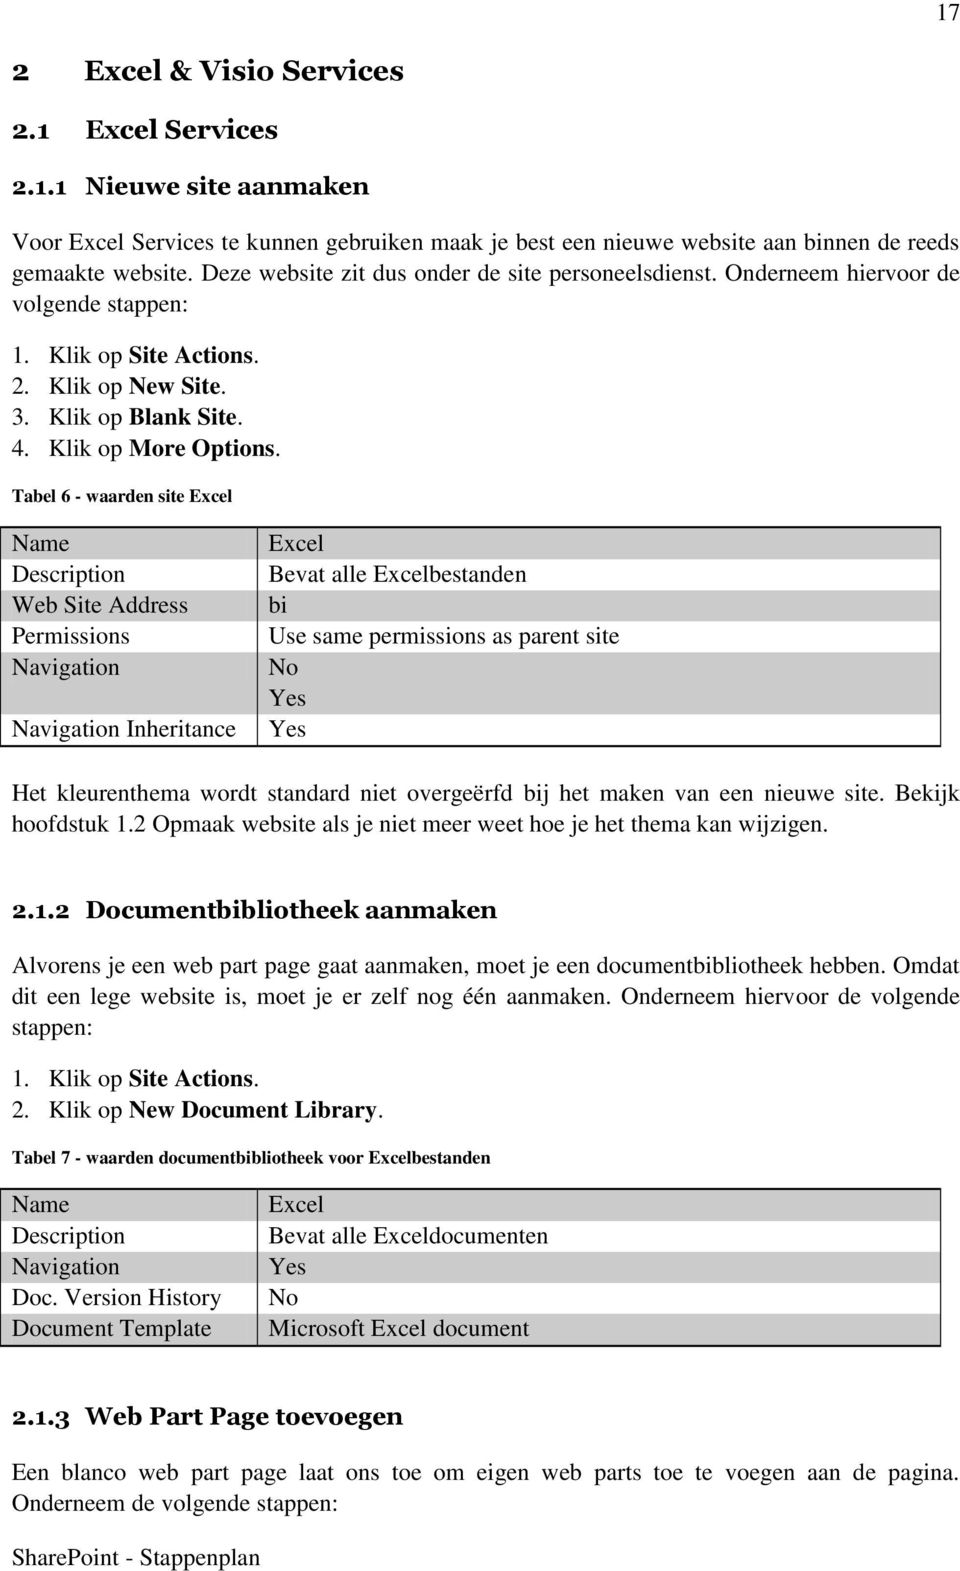 Tabel 6 - waarden site Excel Name Description Web Site Address Permissions Navigation Navigation Inheritance Excel Bevat alle Excelbestanden bi Use same permissions as parent site No Yes Yes Het